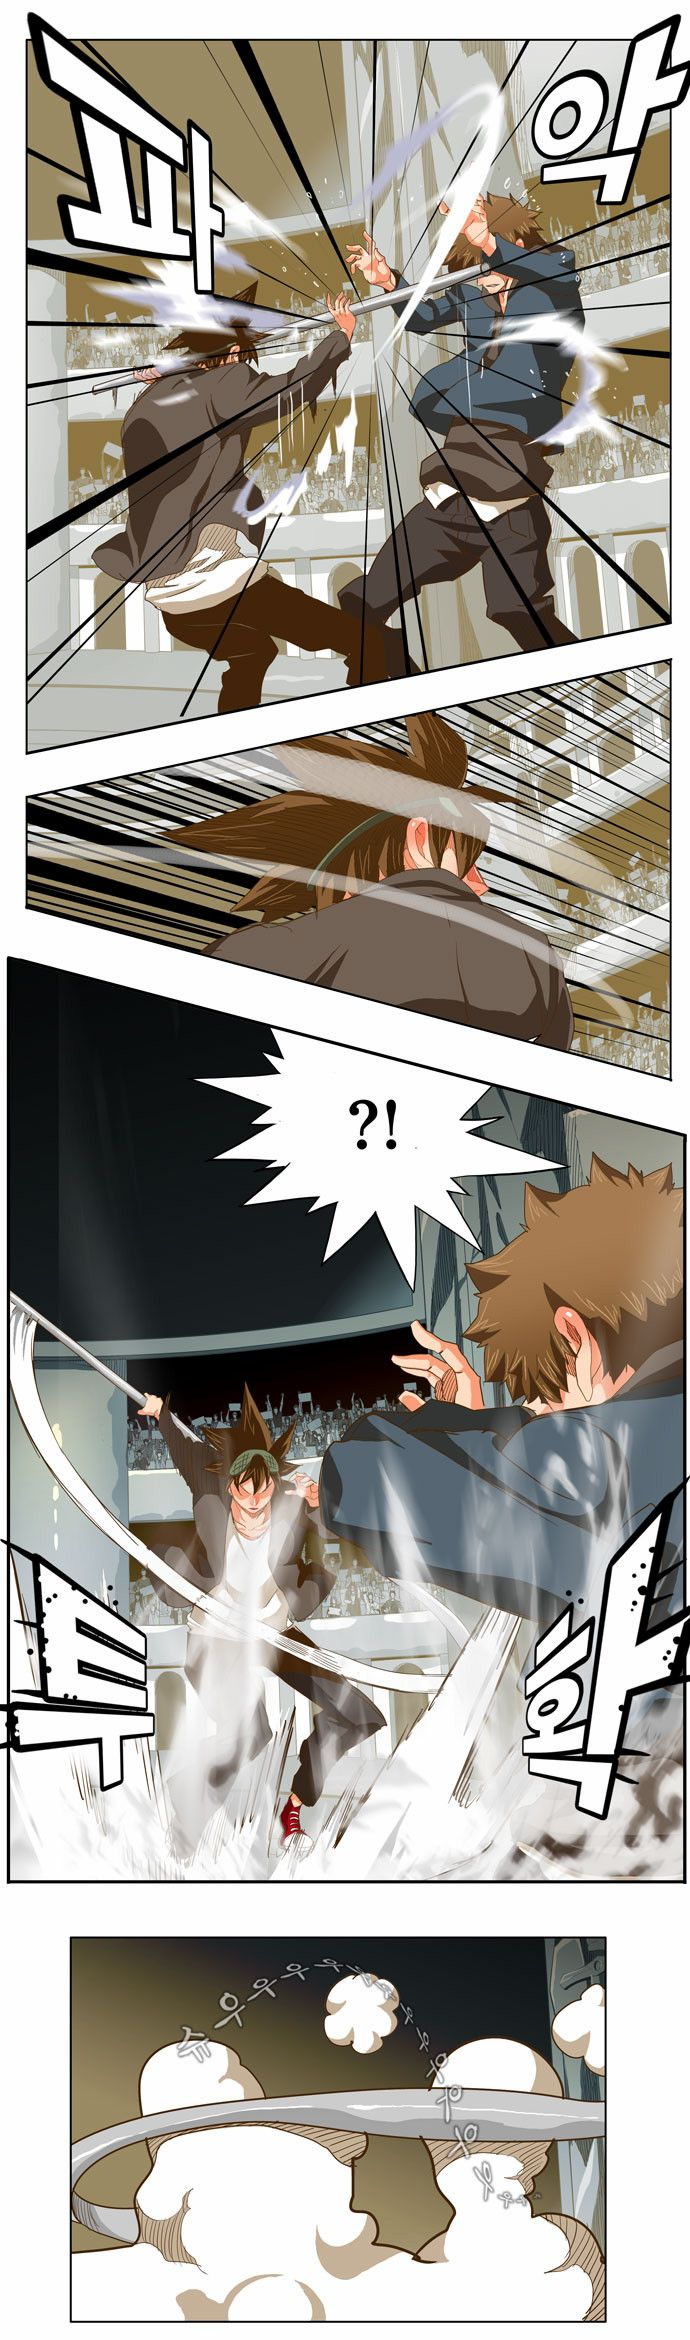 http://c5.ninemanga.com/es_manga/37/485/456291/f5b9430e2561a2e2233863b3a844eb66.jpg Page 10